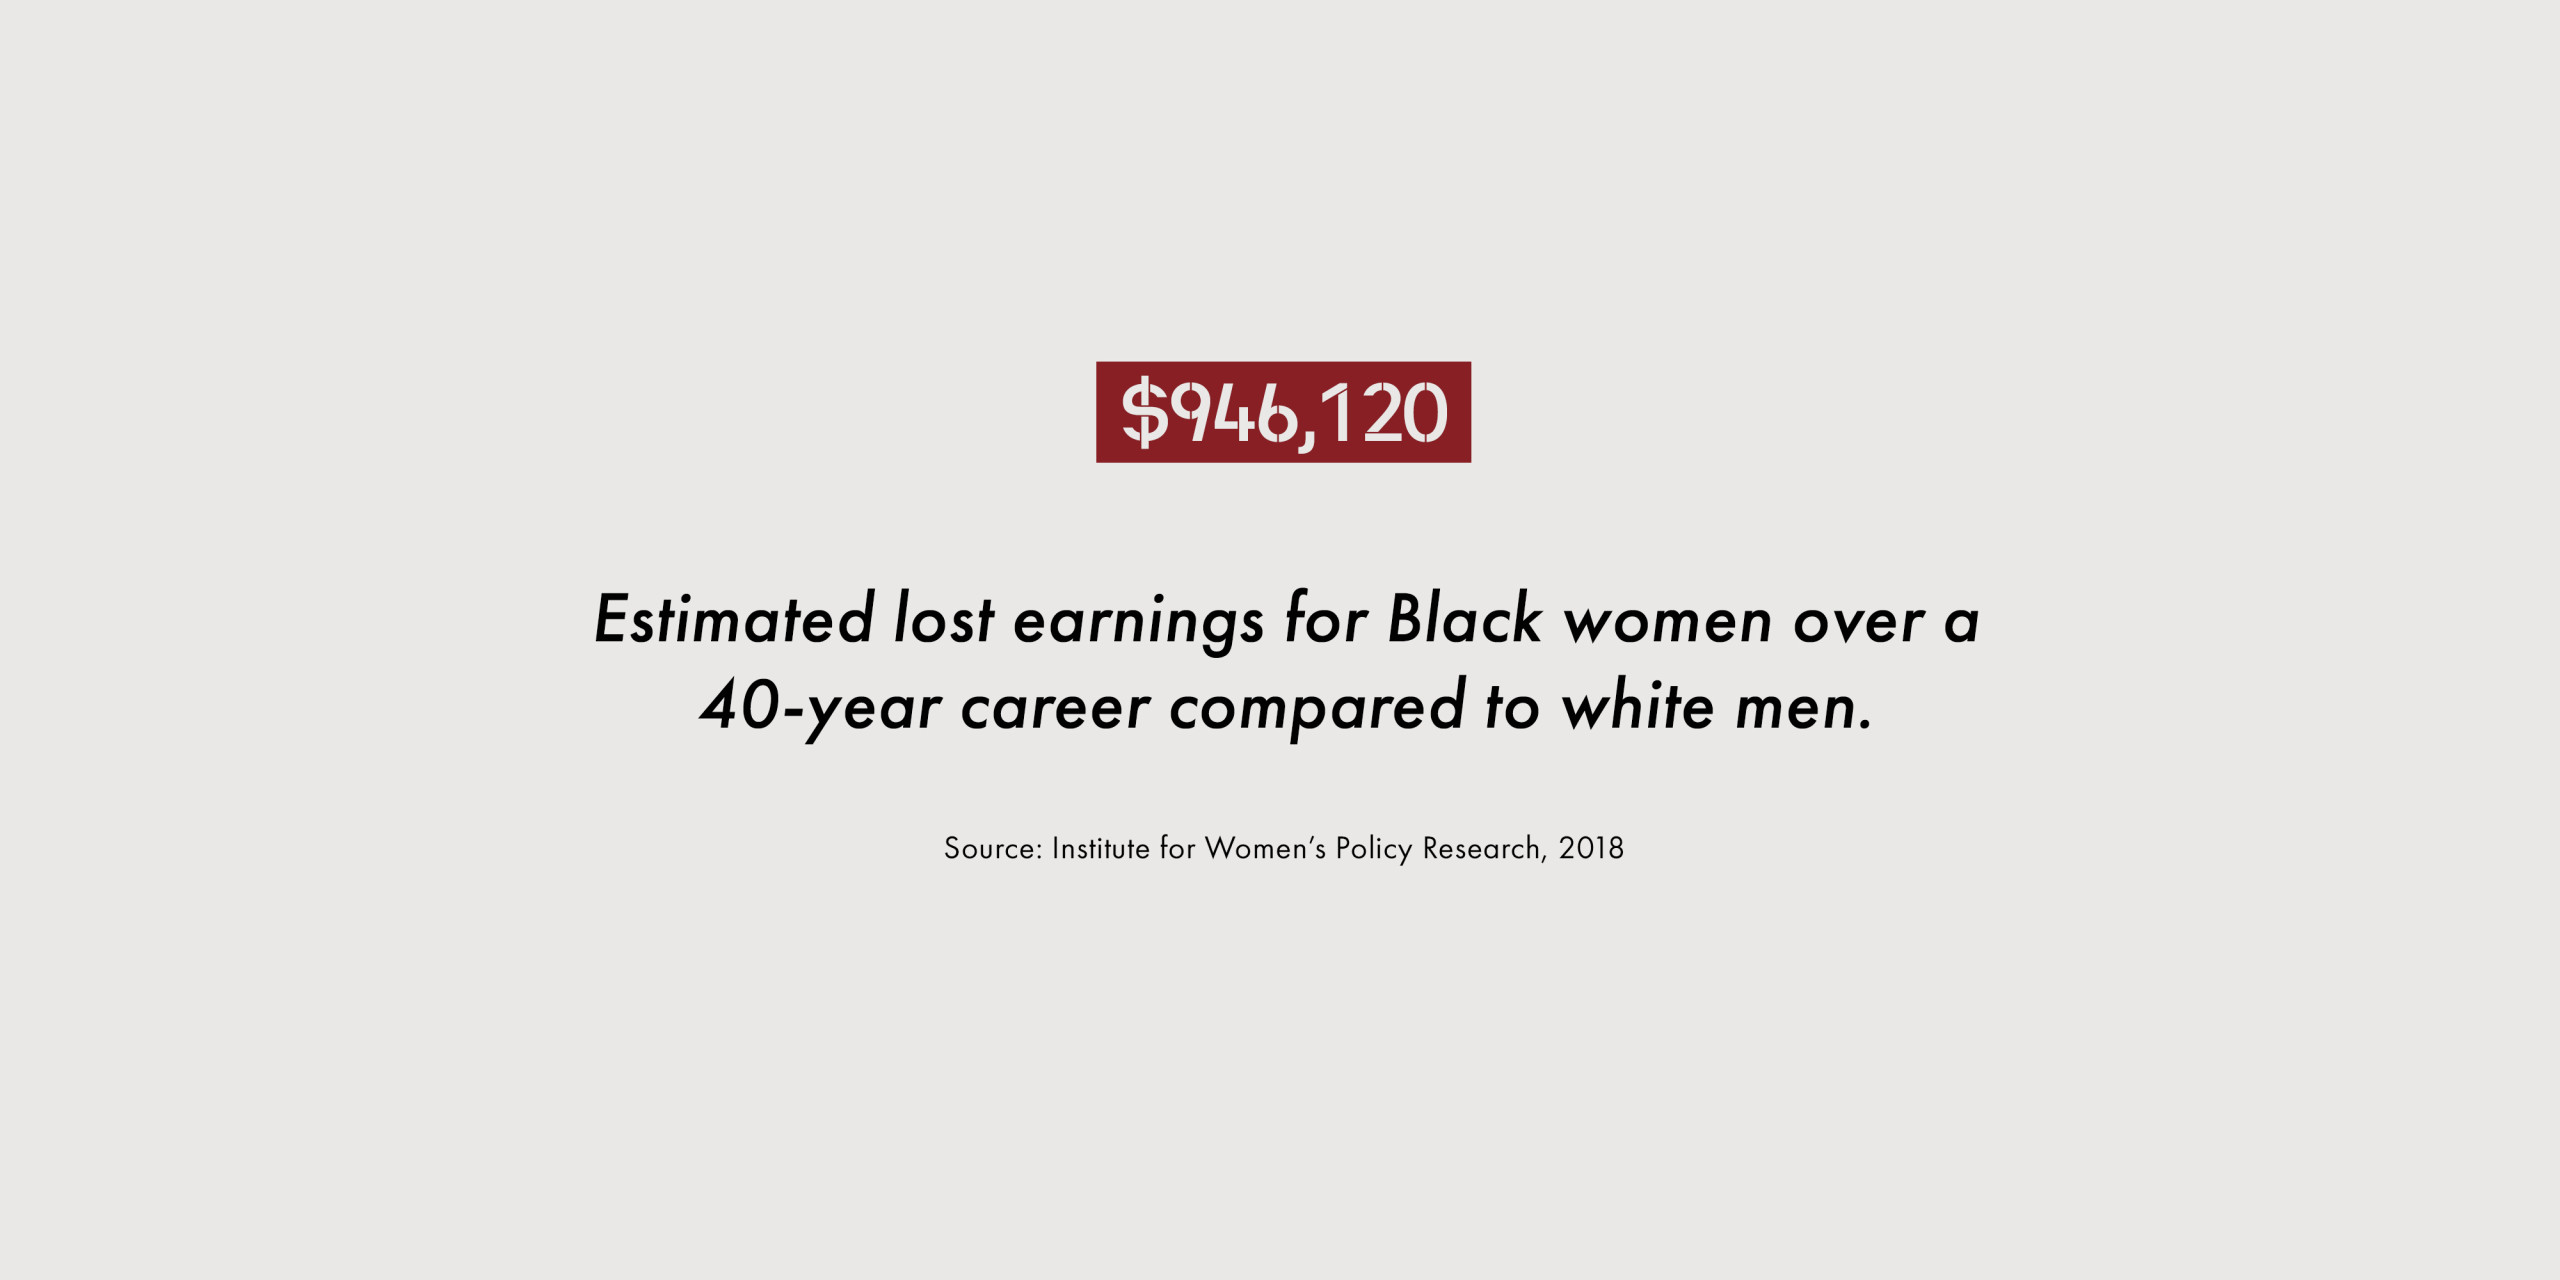 946,120 dollars. Estimated lost earnings for Black women over a 40-year career compared to white men.